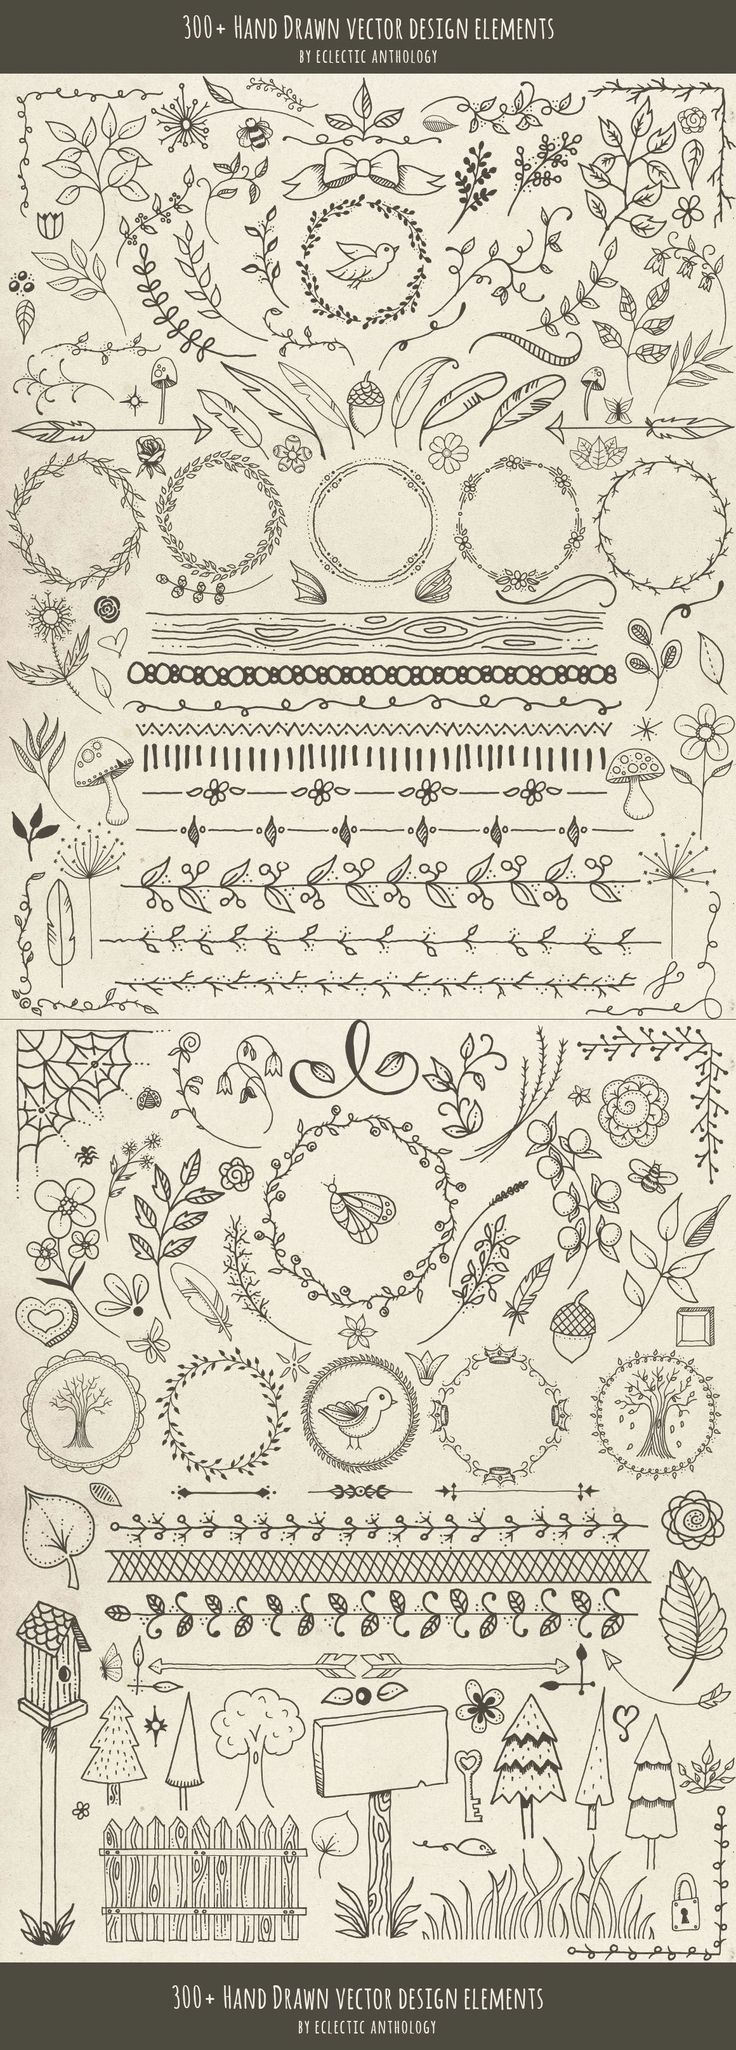 YESSS Best Nature Themed-!Hand Drawn Vector Design Elements